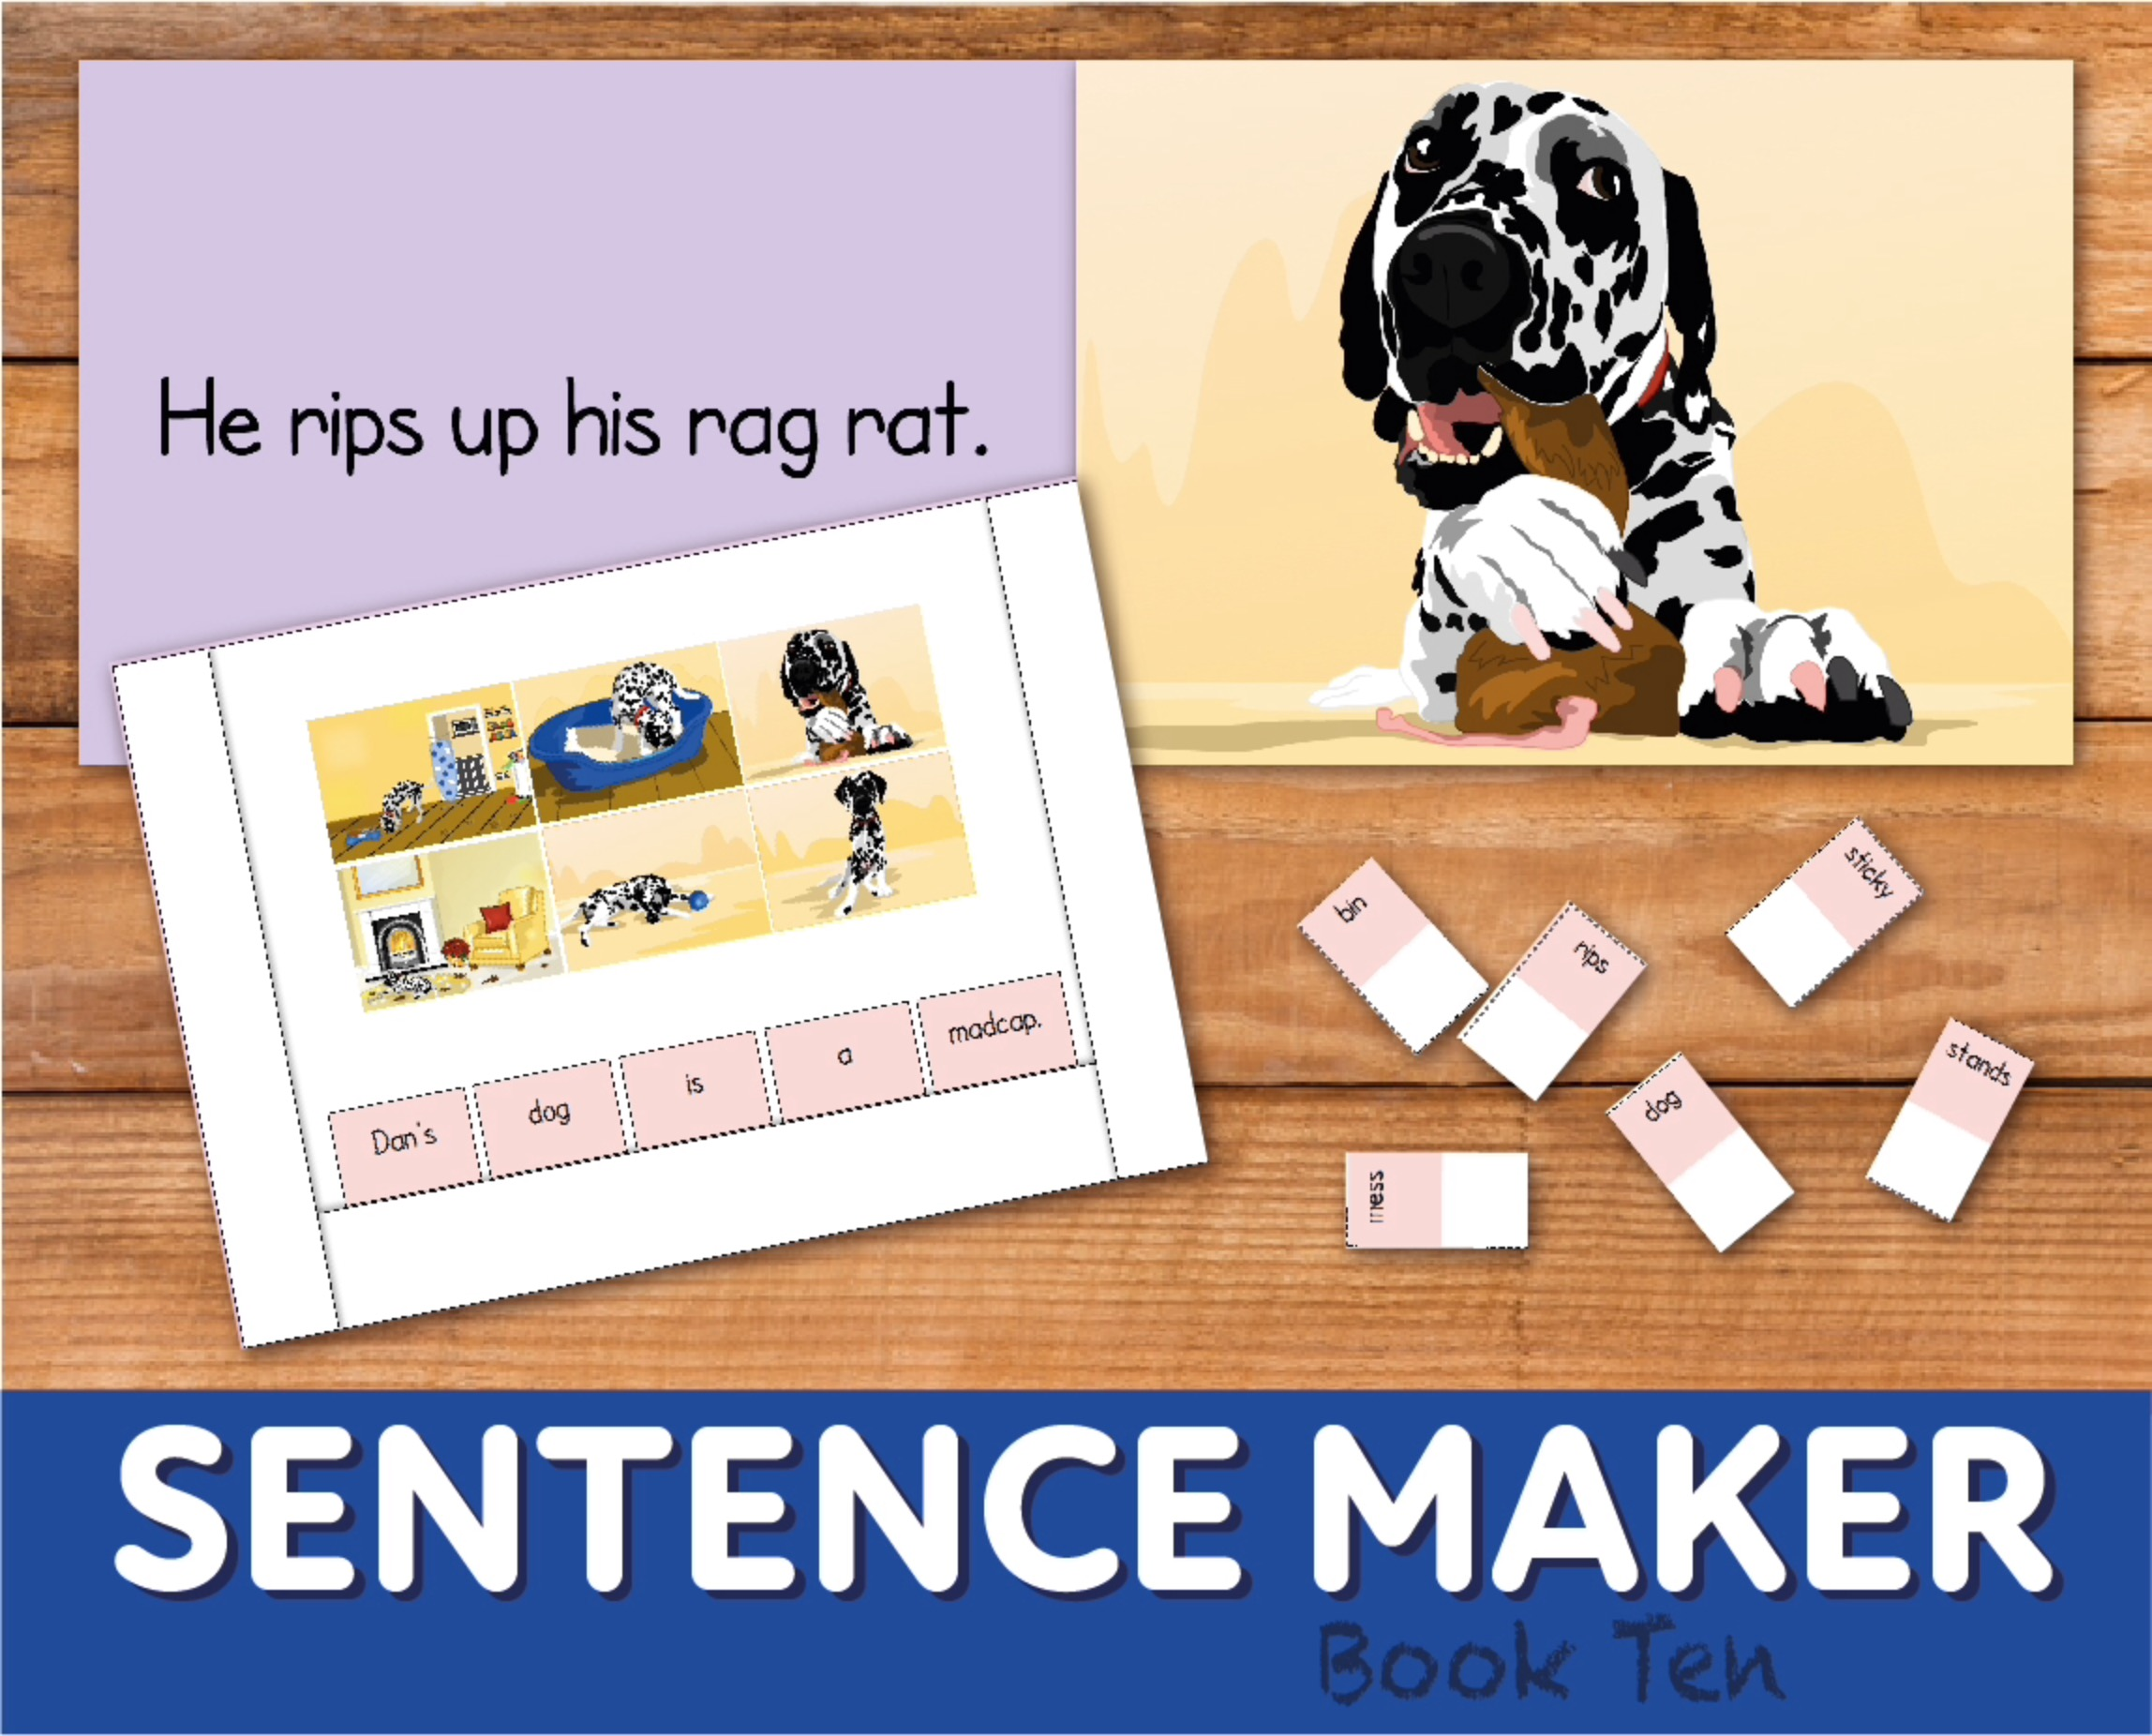 Make Sentences With The Sentence Maker: Book 10